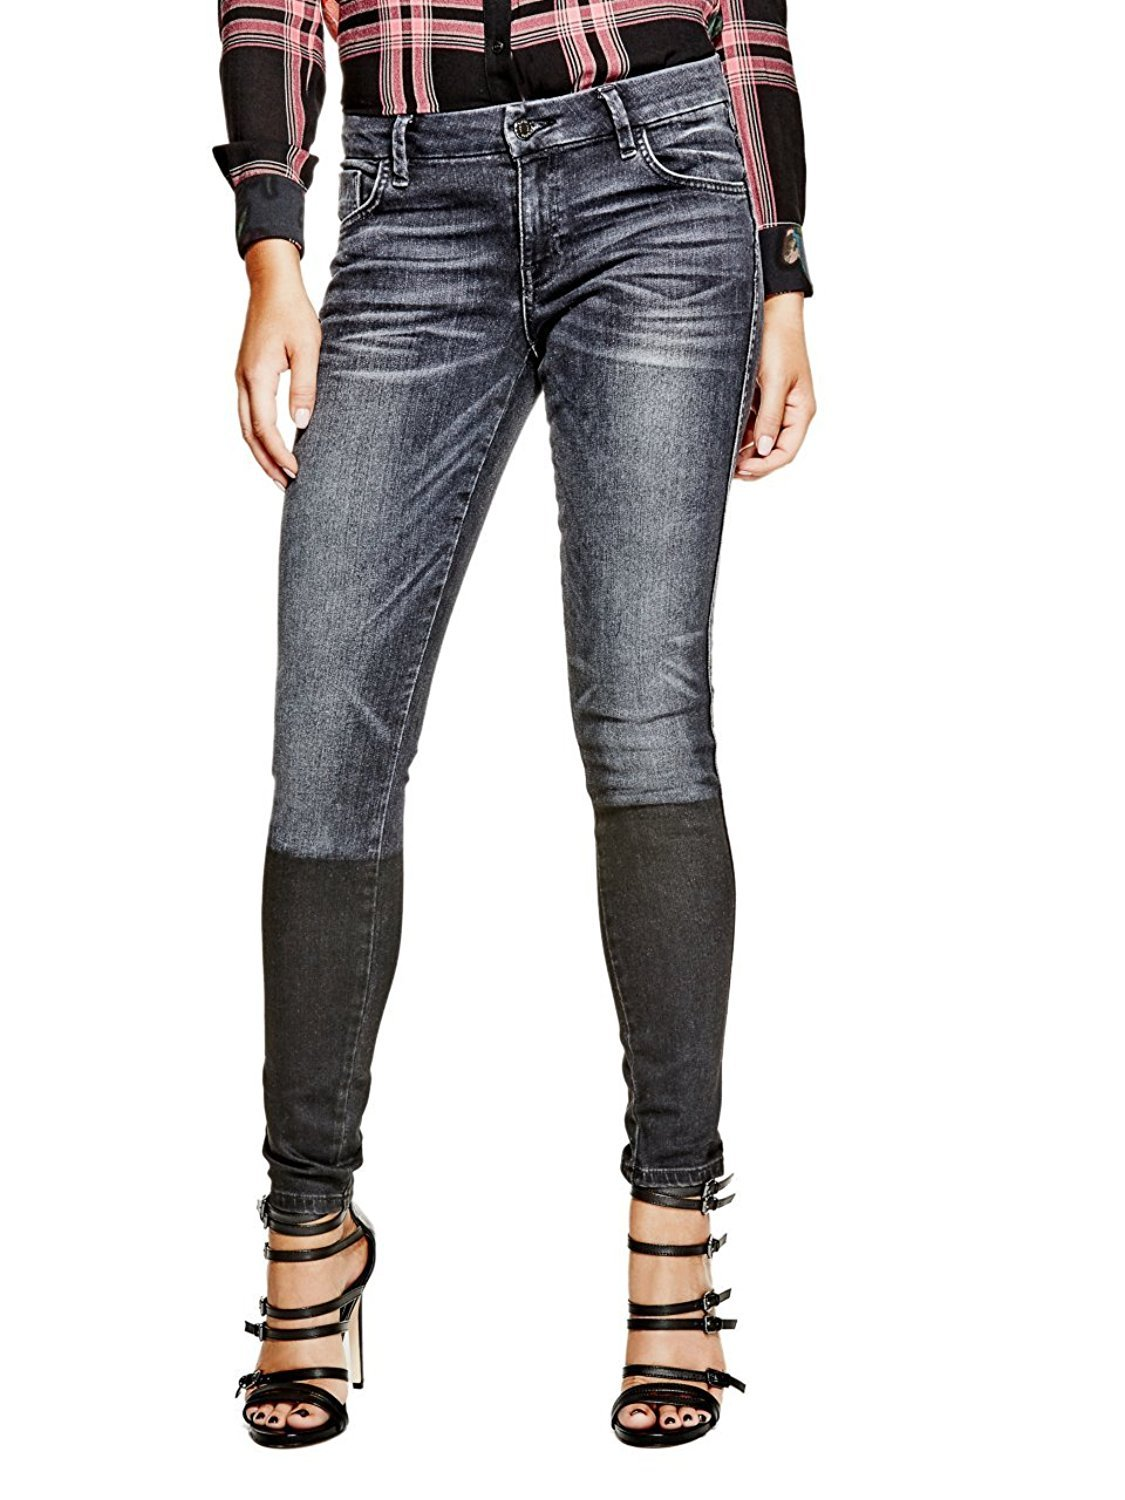 Guess Women's Shape Up Skinny Jeans (24, Washed Black Tonal)